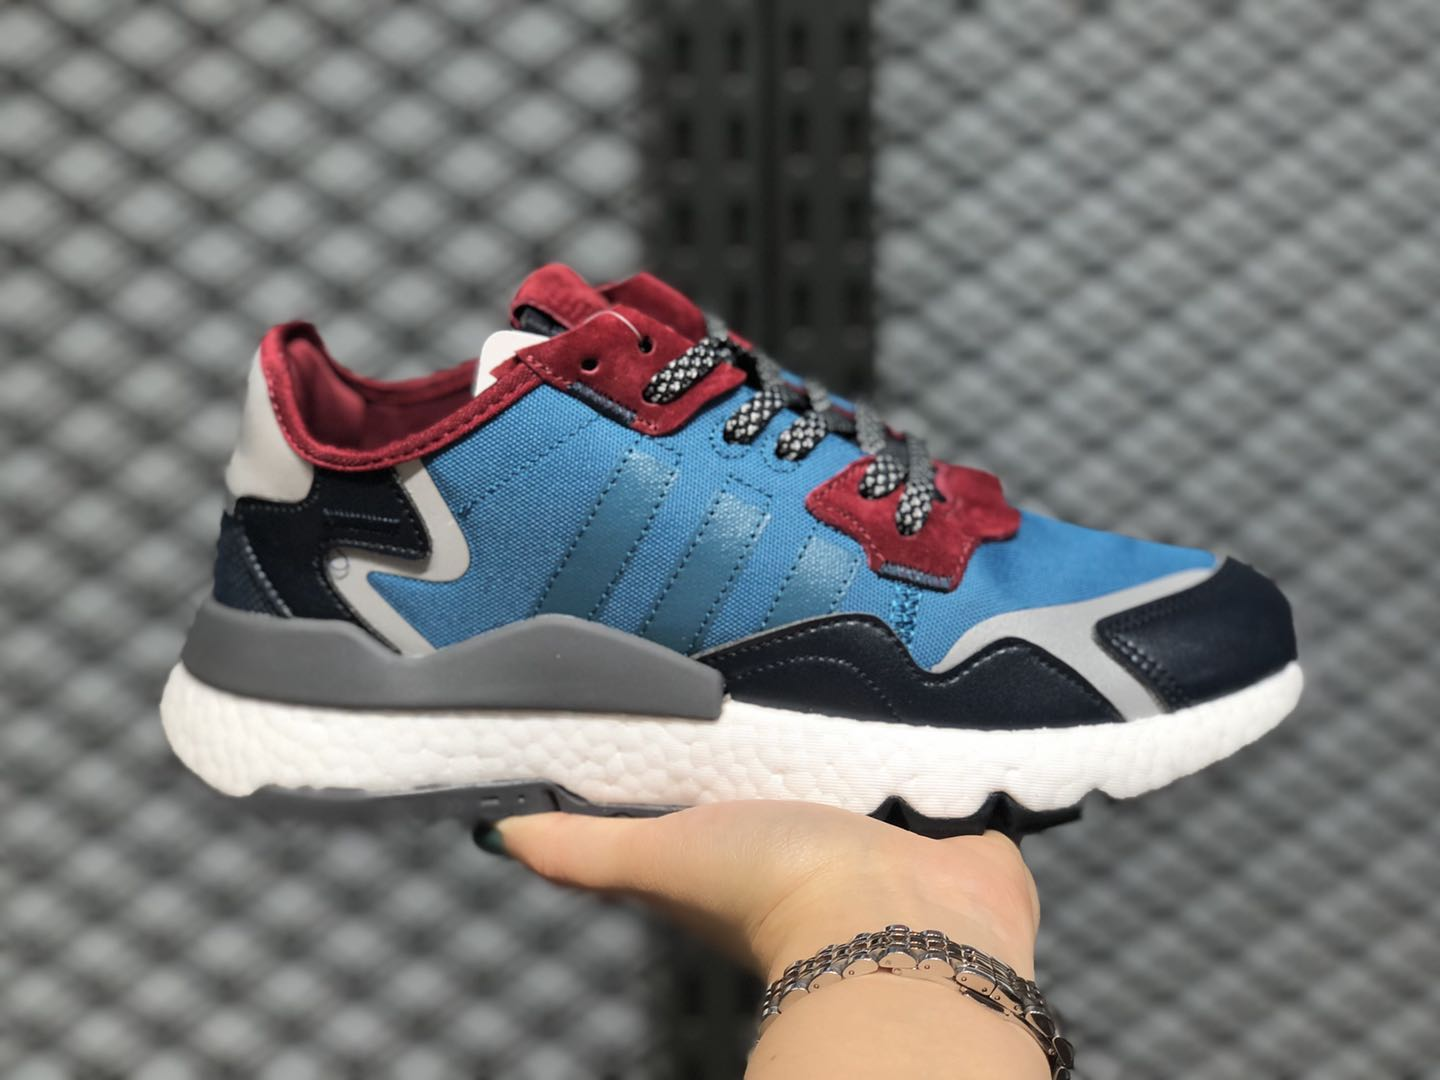 Adidas Nite Jogger Boost Tech Mineral/Color Navy EE5872 Online Buy